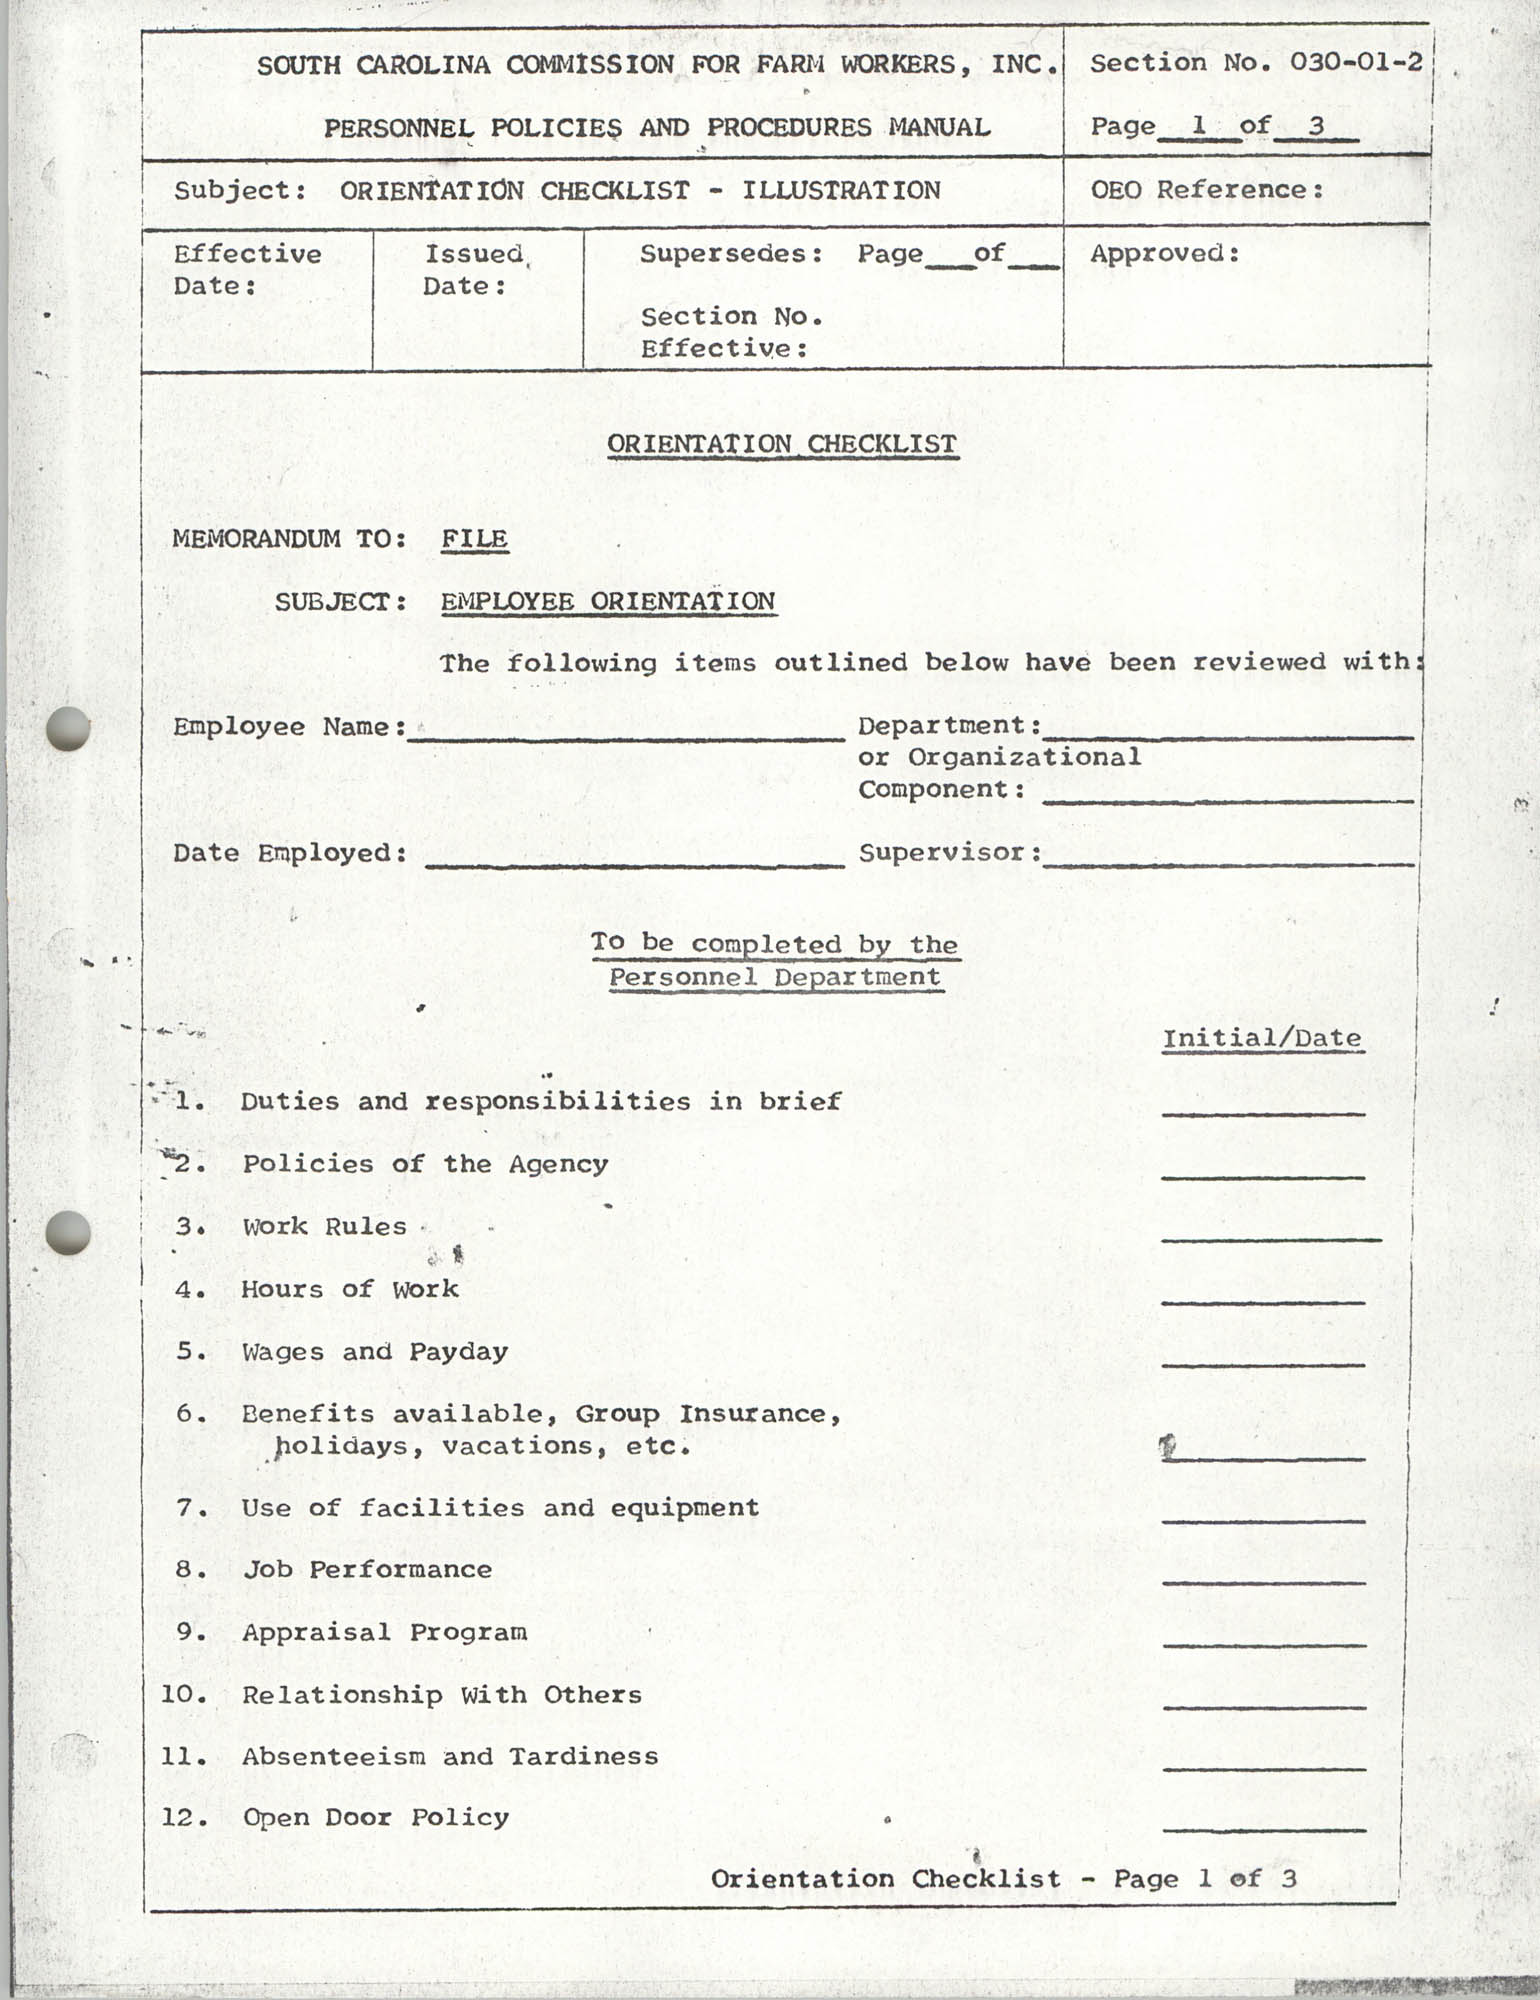 Personnel Policies and Procedures Manual, Section No. 030-01-2, Page 1